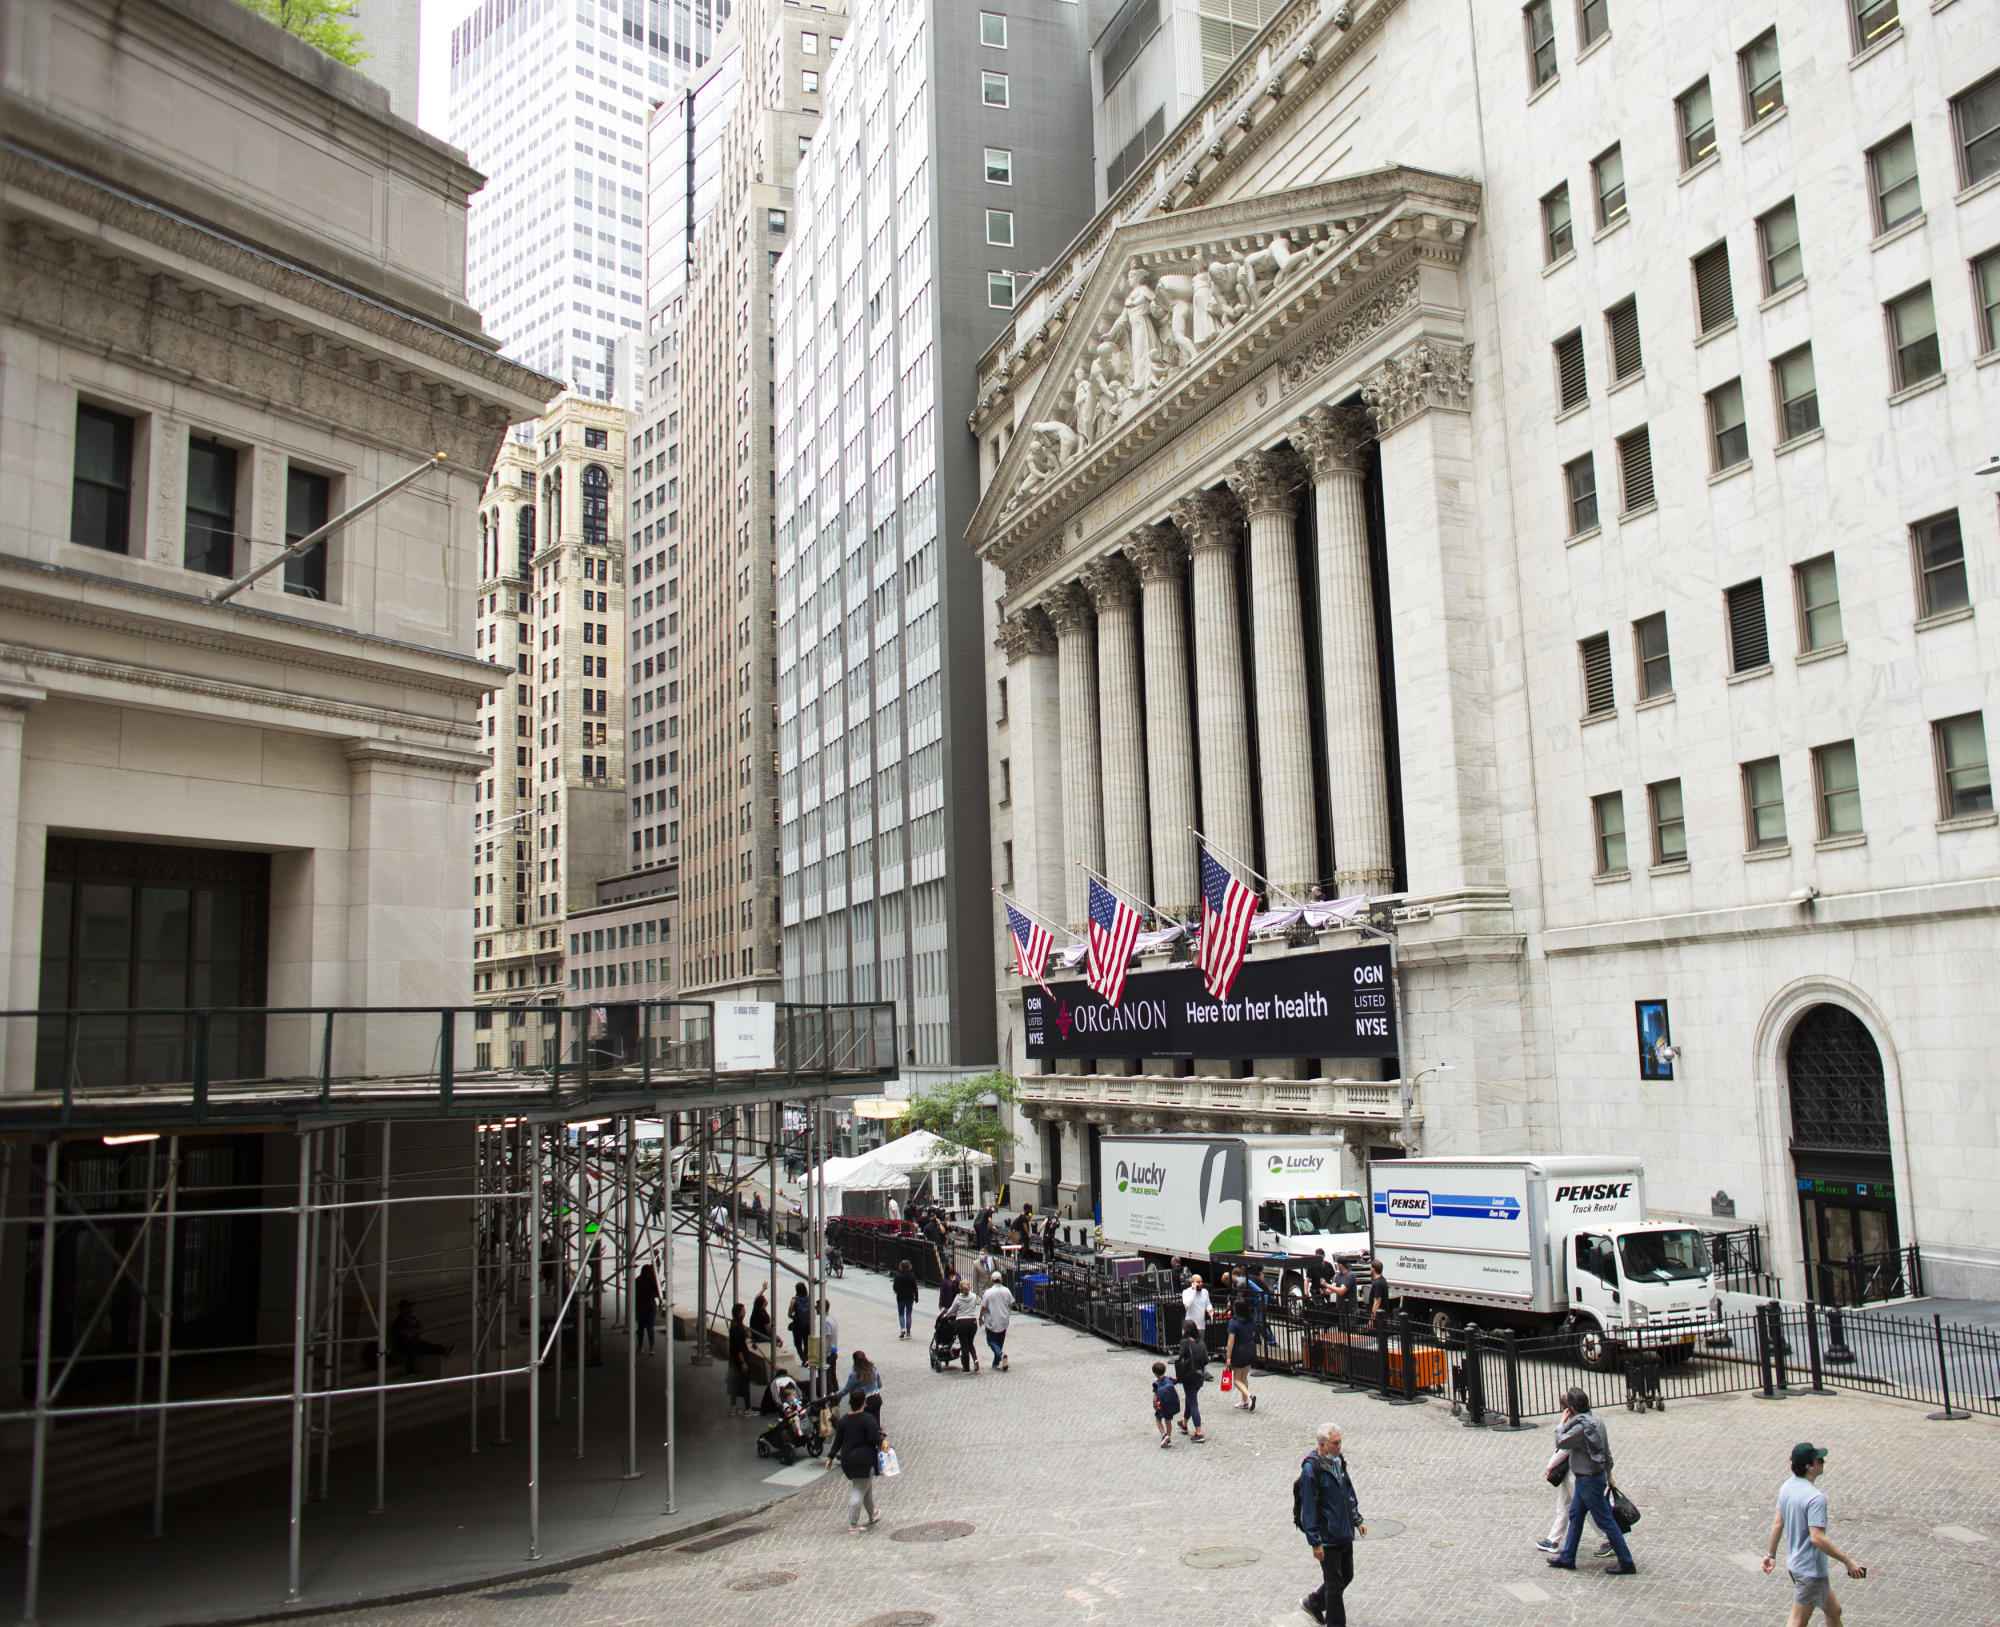 Stock market news live updates: Dow, S&P 500 extend declines after Fed outlook signals rate hikes